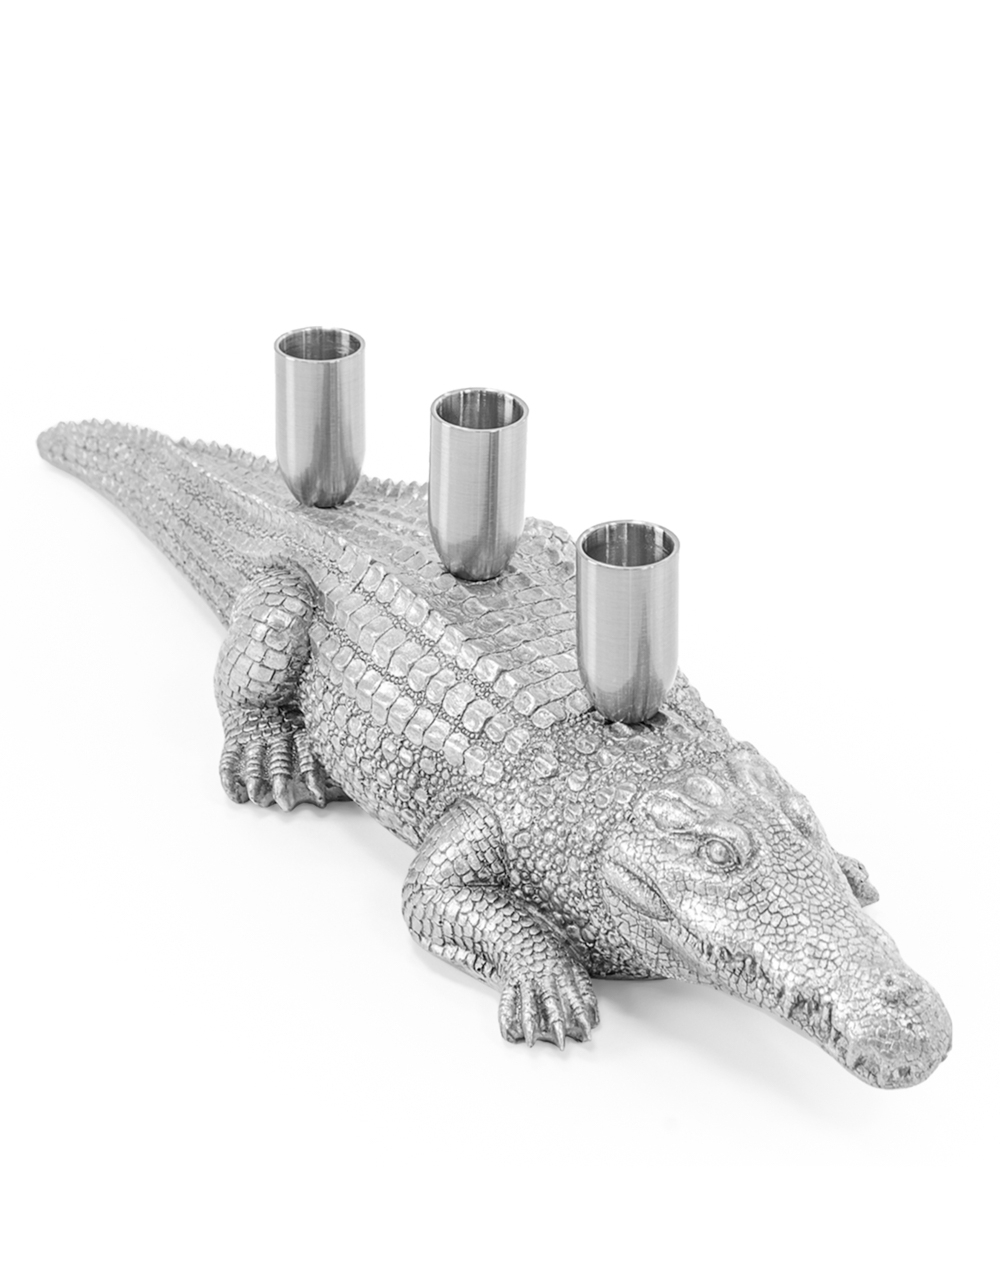 Antique Silver Crocodile Candle Holder